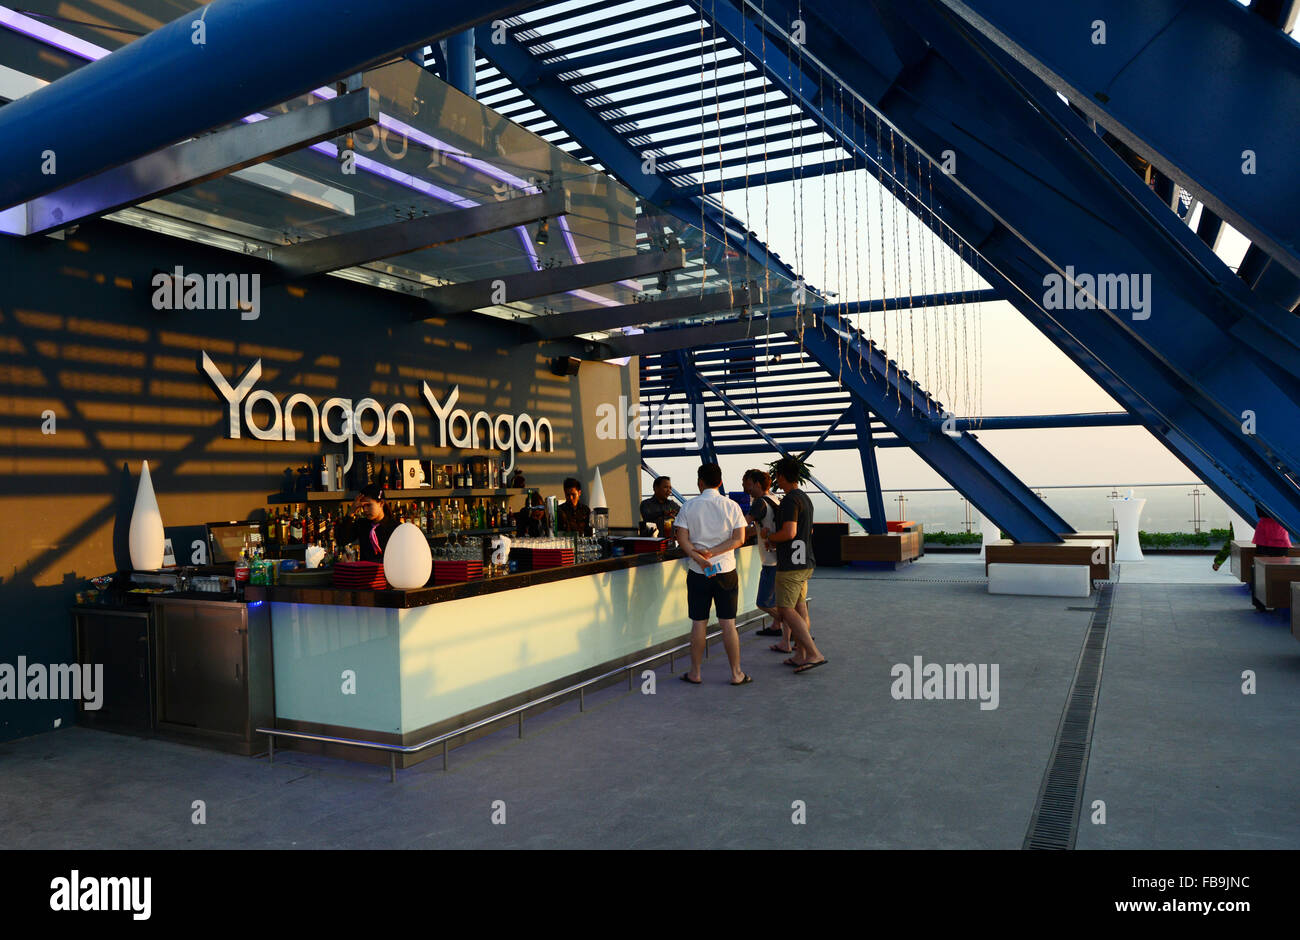 The beautiful 'Yangon Yangon' sky bar in Yangon's city center. Stock Photo